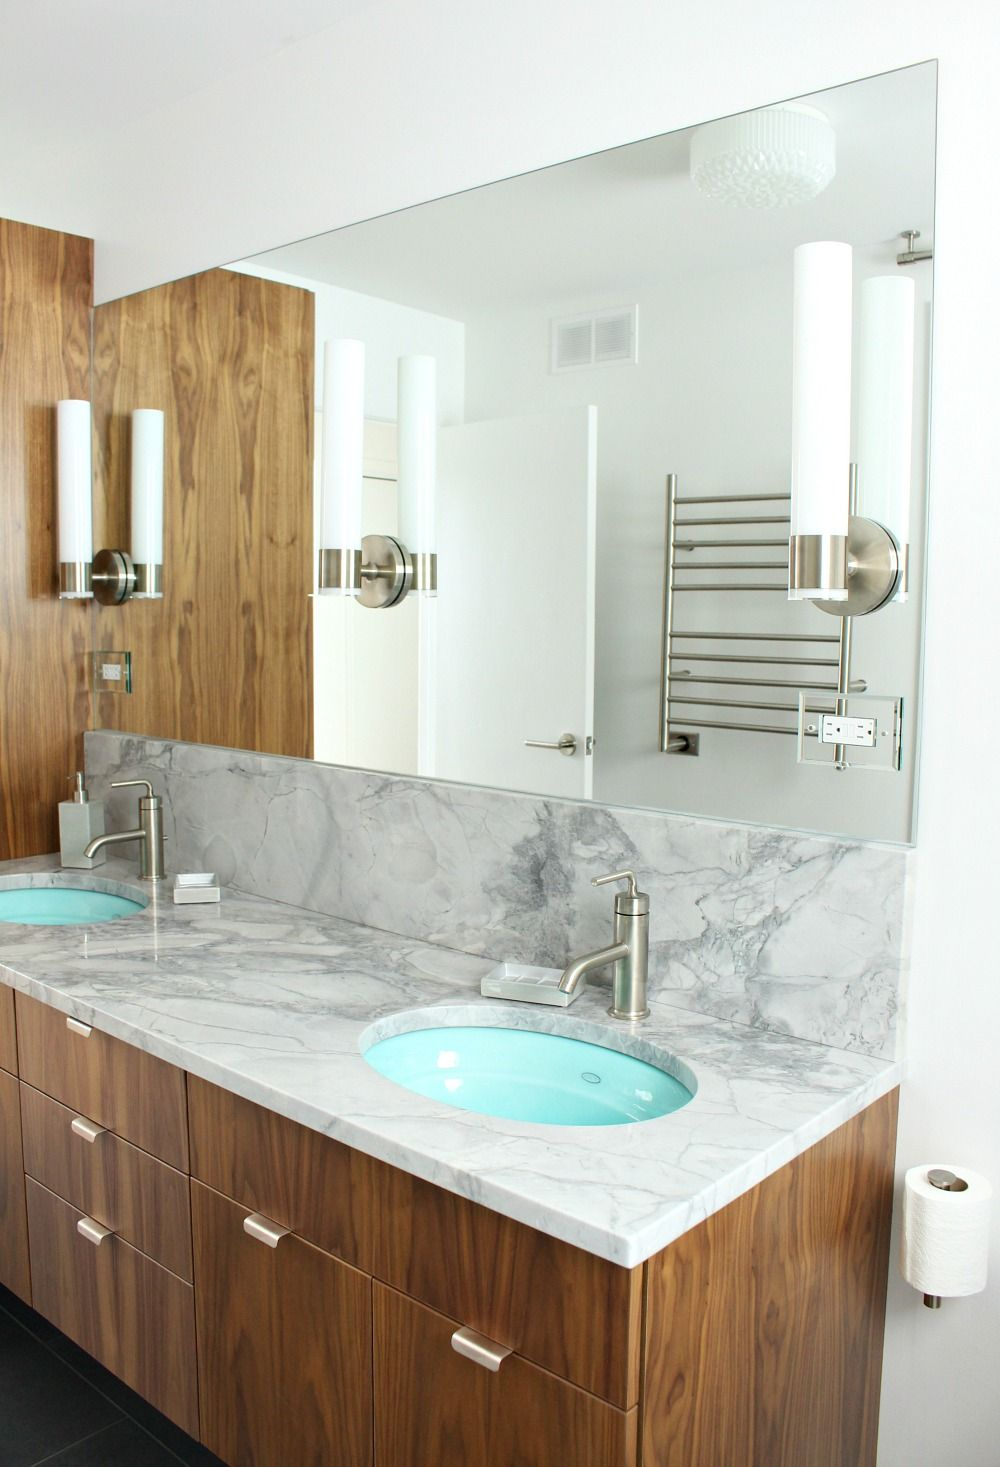 Bathroom Update How To Install Bathroom Sconces On A Mirror With